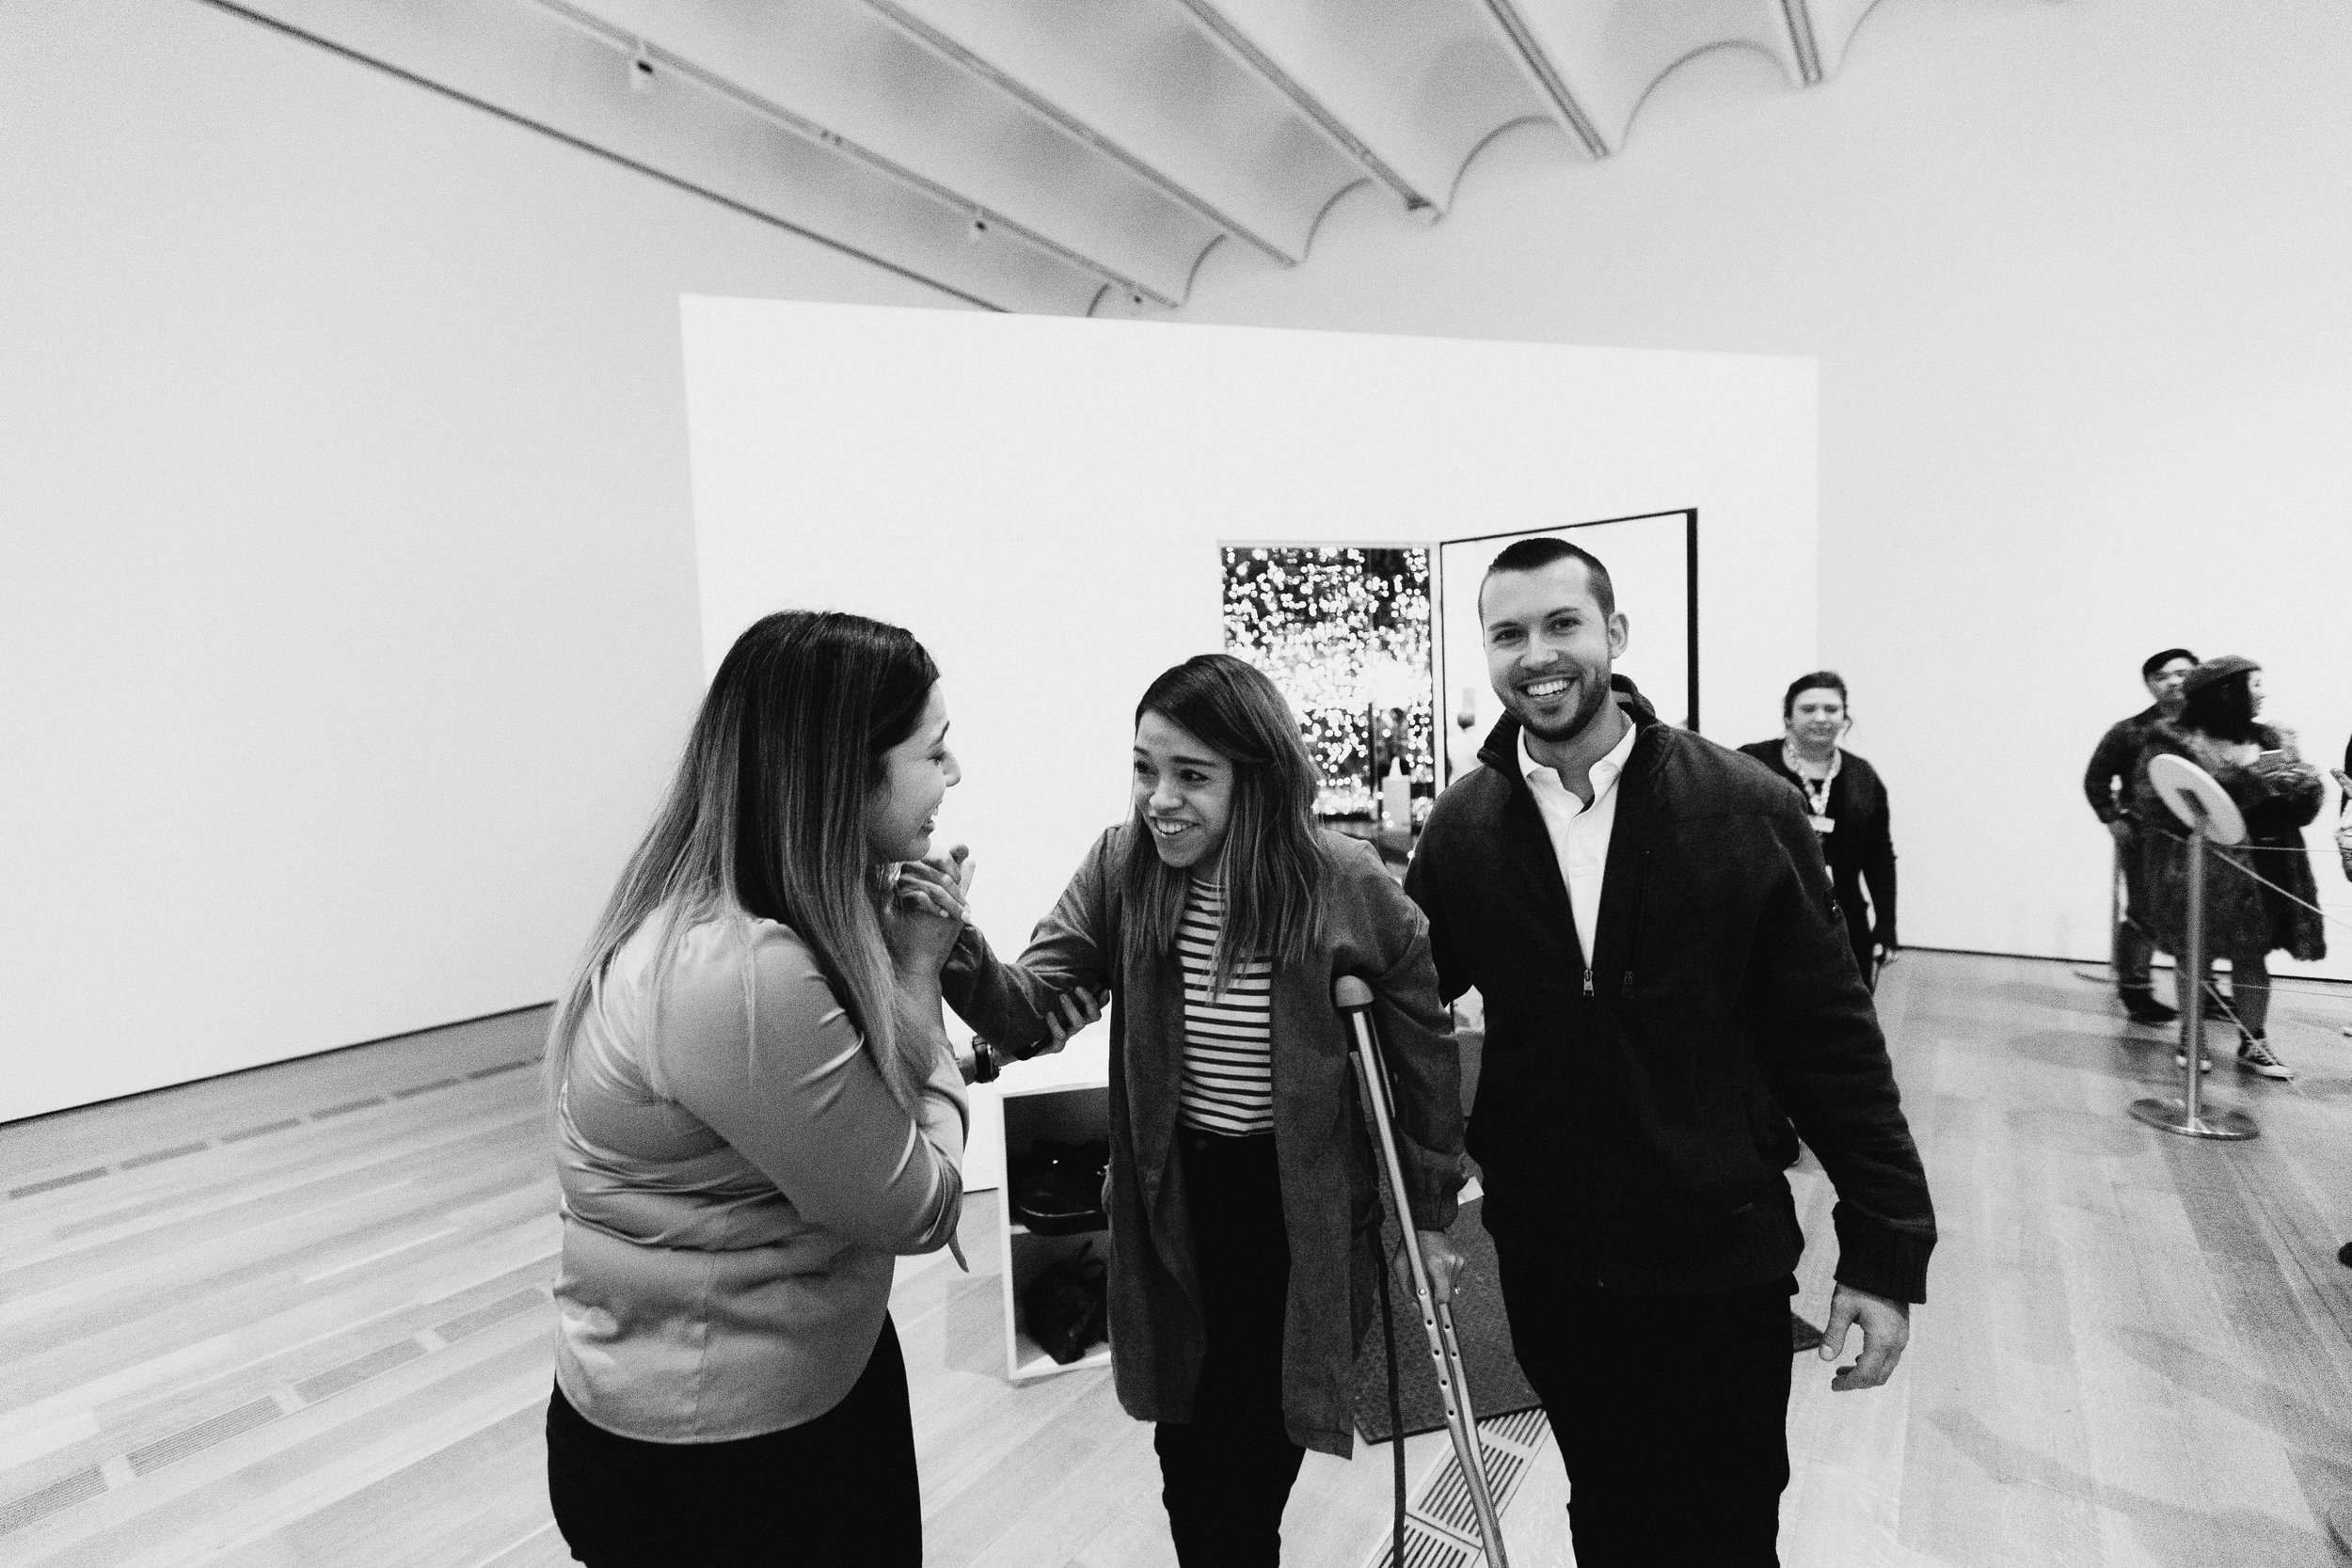 high_museum_infinity_mirrors_Yayoi_Kusama_proposal_amazing_atlanta_real_couple_engagement_ideas_epic_1032.jpg